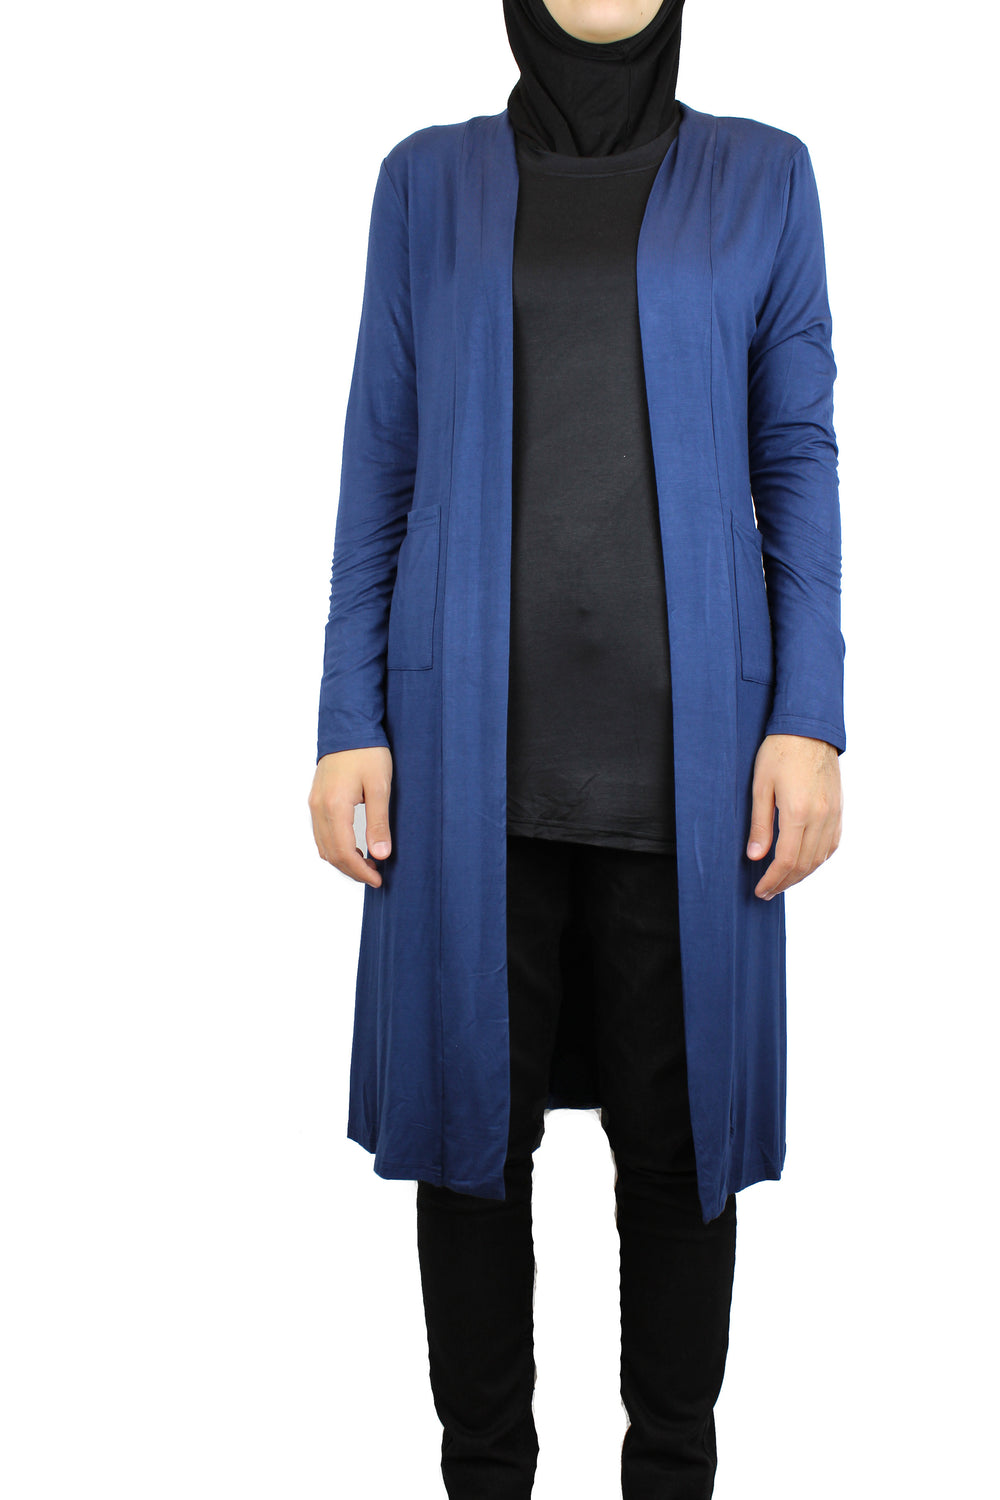 navy blue maxi cardigan with long sleeves and pockets